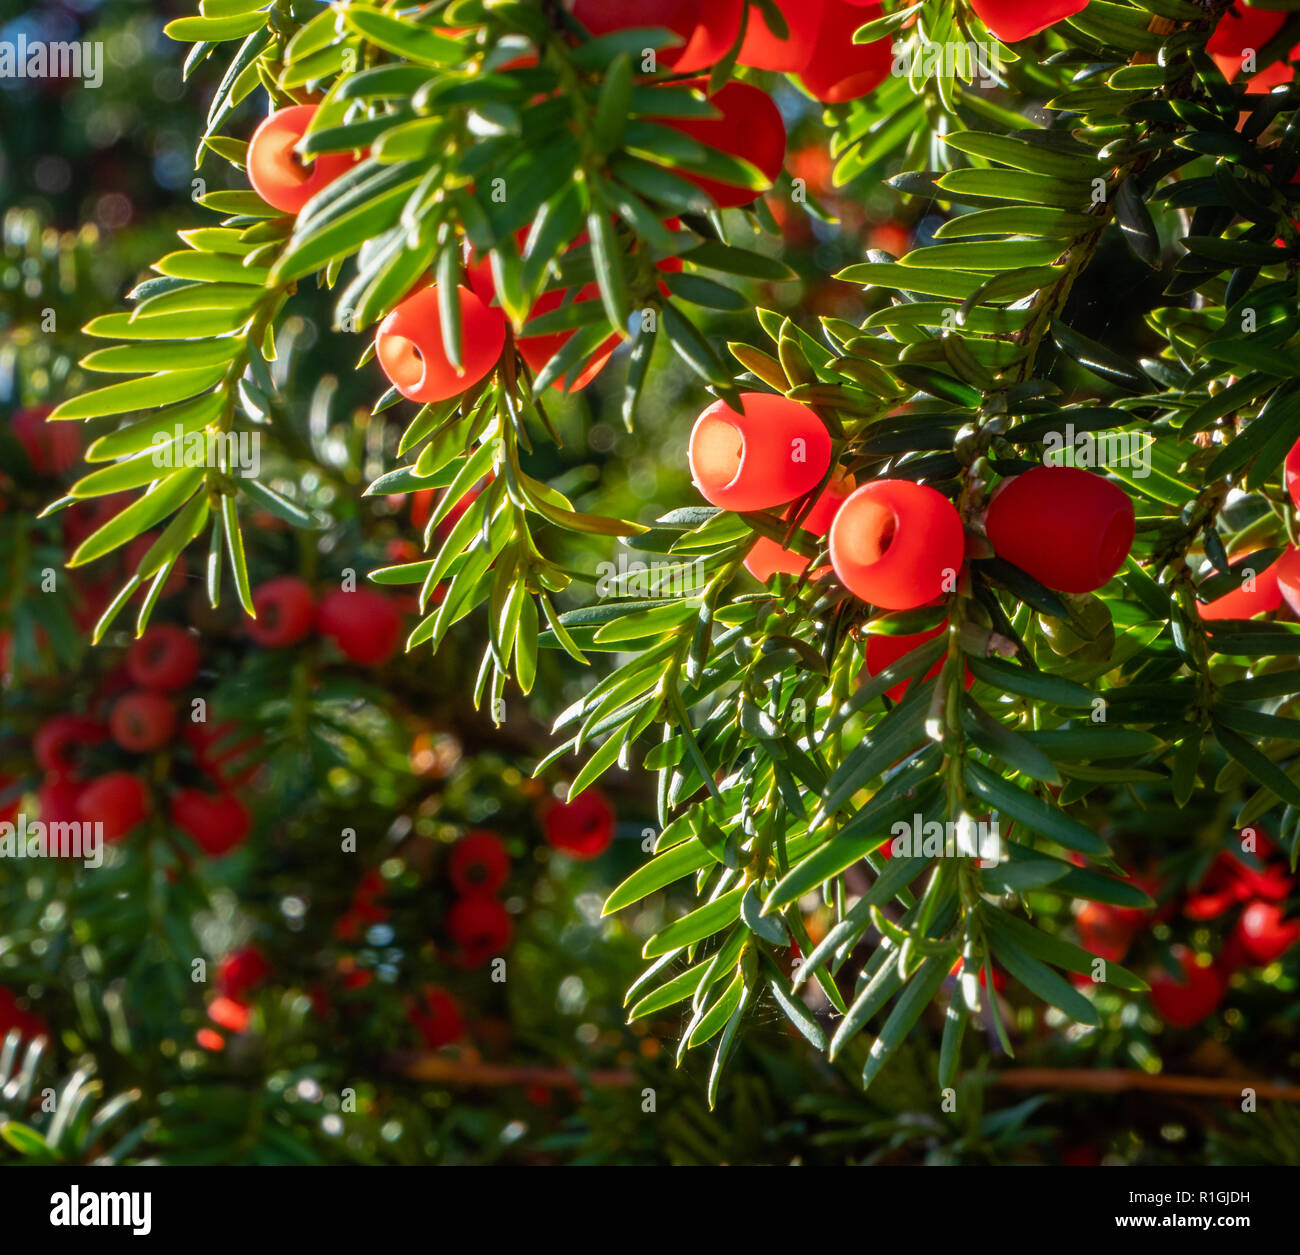 Yew tree with waxy red berries in autumn - Somerset UK Stock Photo